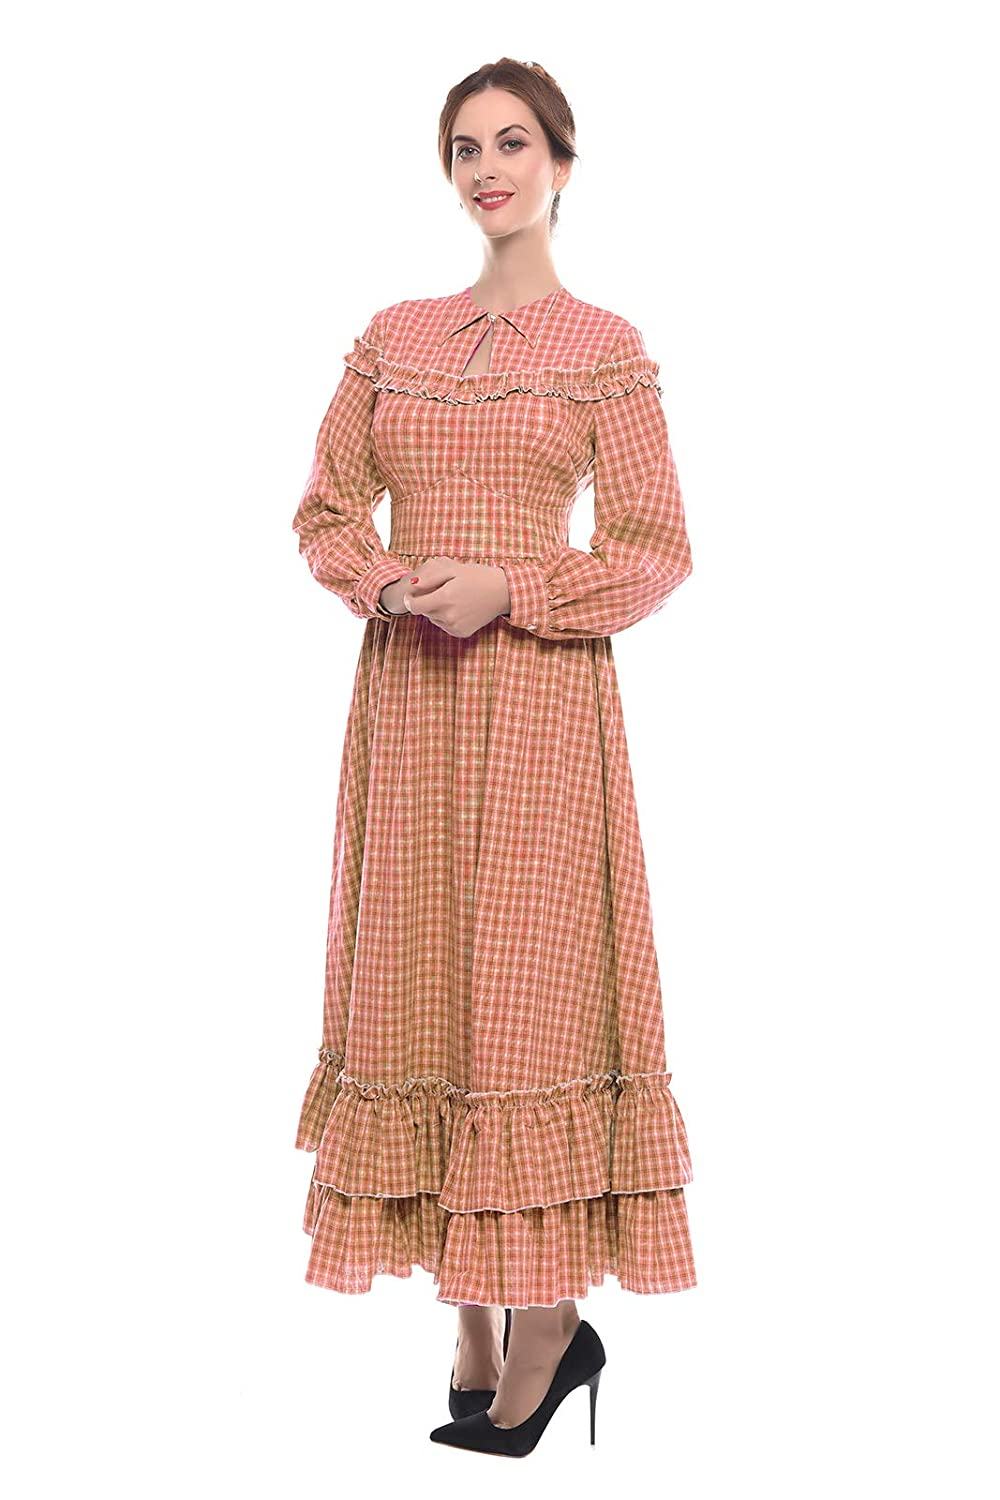 Cottagecore Dresses Aesthetic, Granny, Vintage NSPSTT Women Girls American Pioneer Colonial Dress Prairie Costume $53.99 AT vintagedancer.com